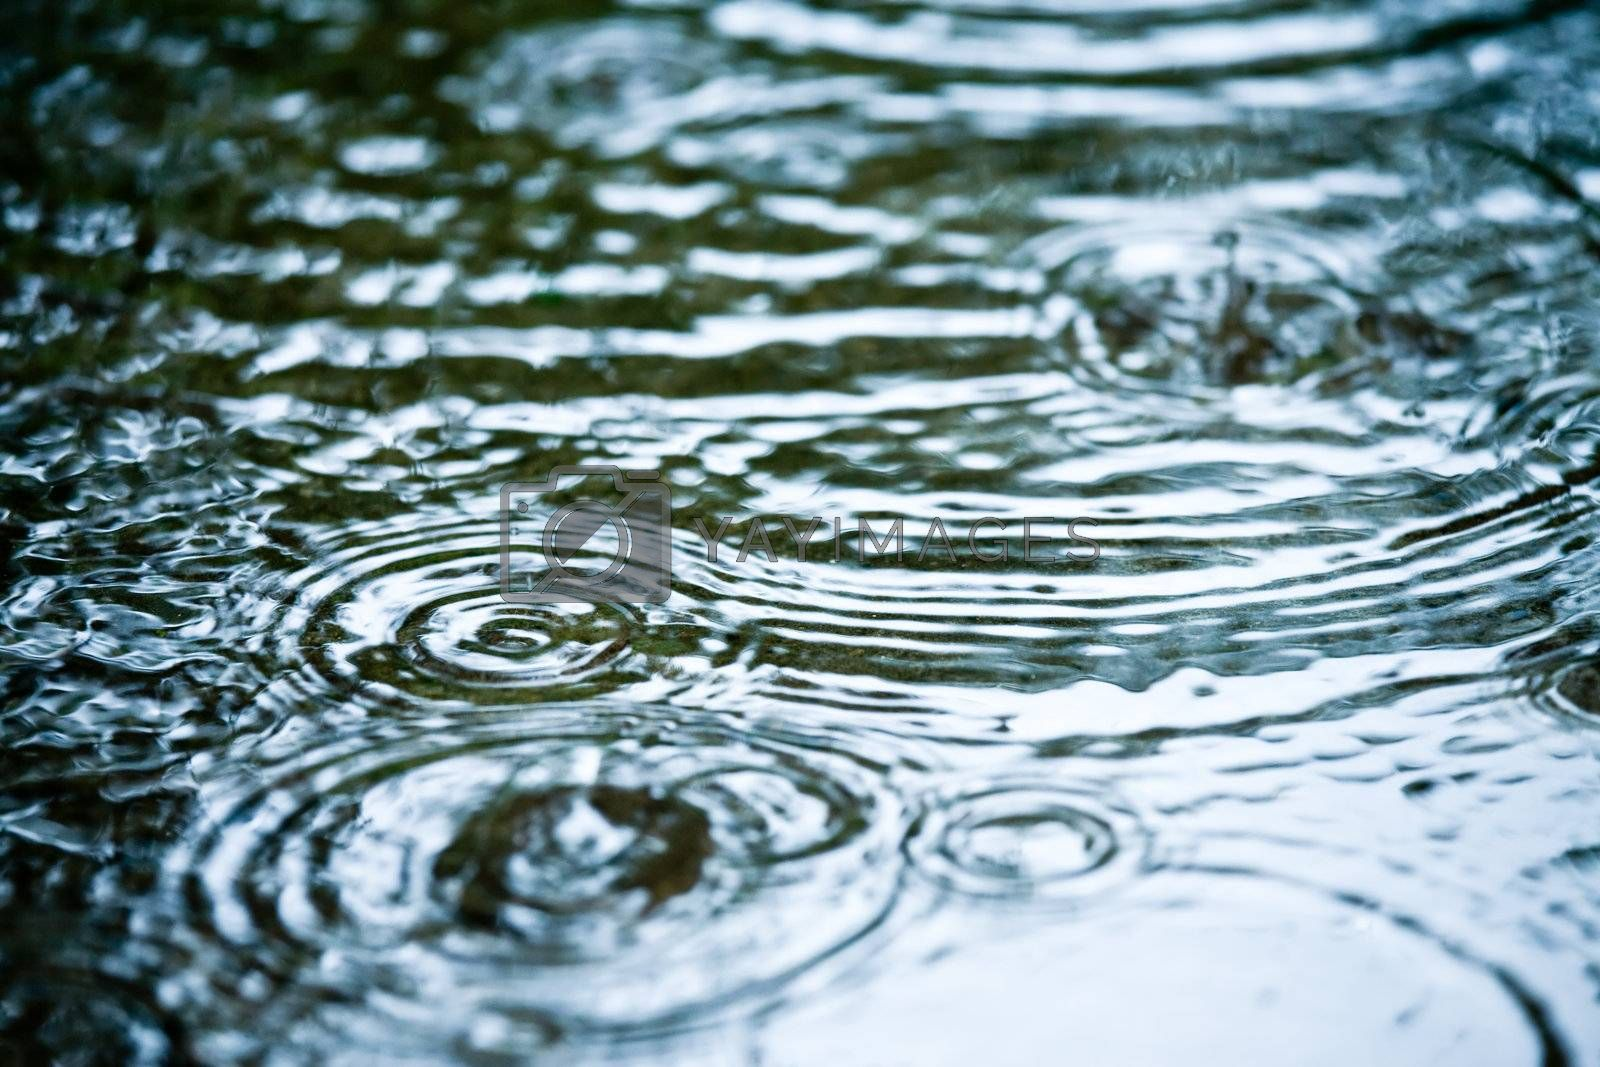 Rain drops rippling in a puddle